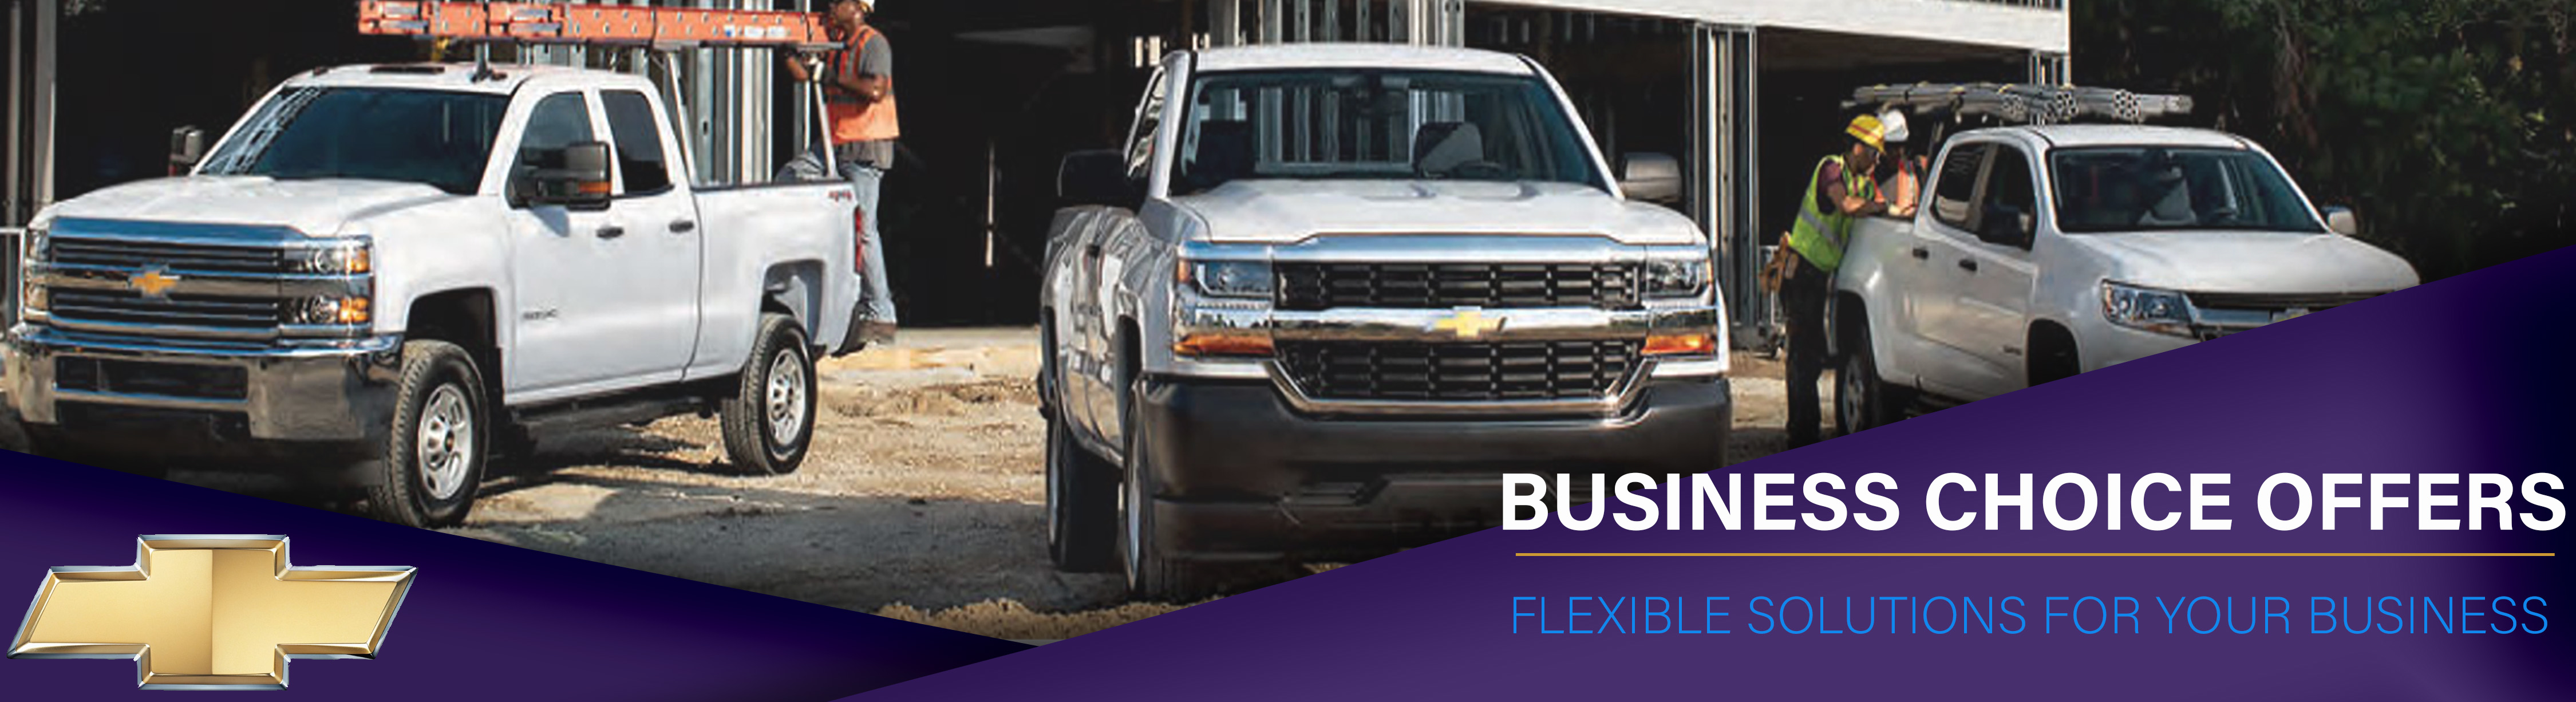 The 2018 Business Choice Offers Can Give You Best Value On Vehicles Count To Keep Your Moving With Cash Allowances Either Gm